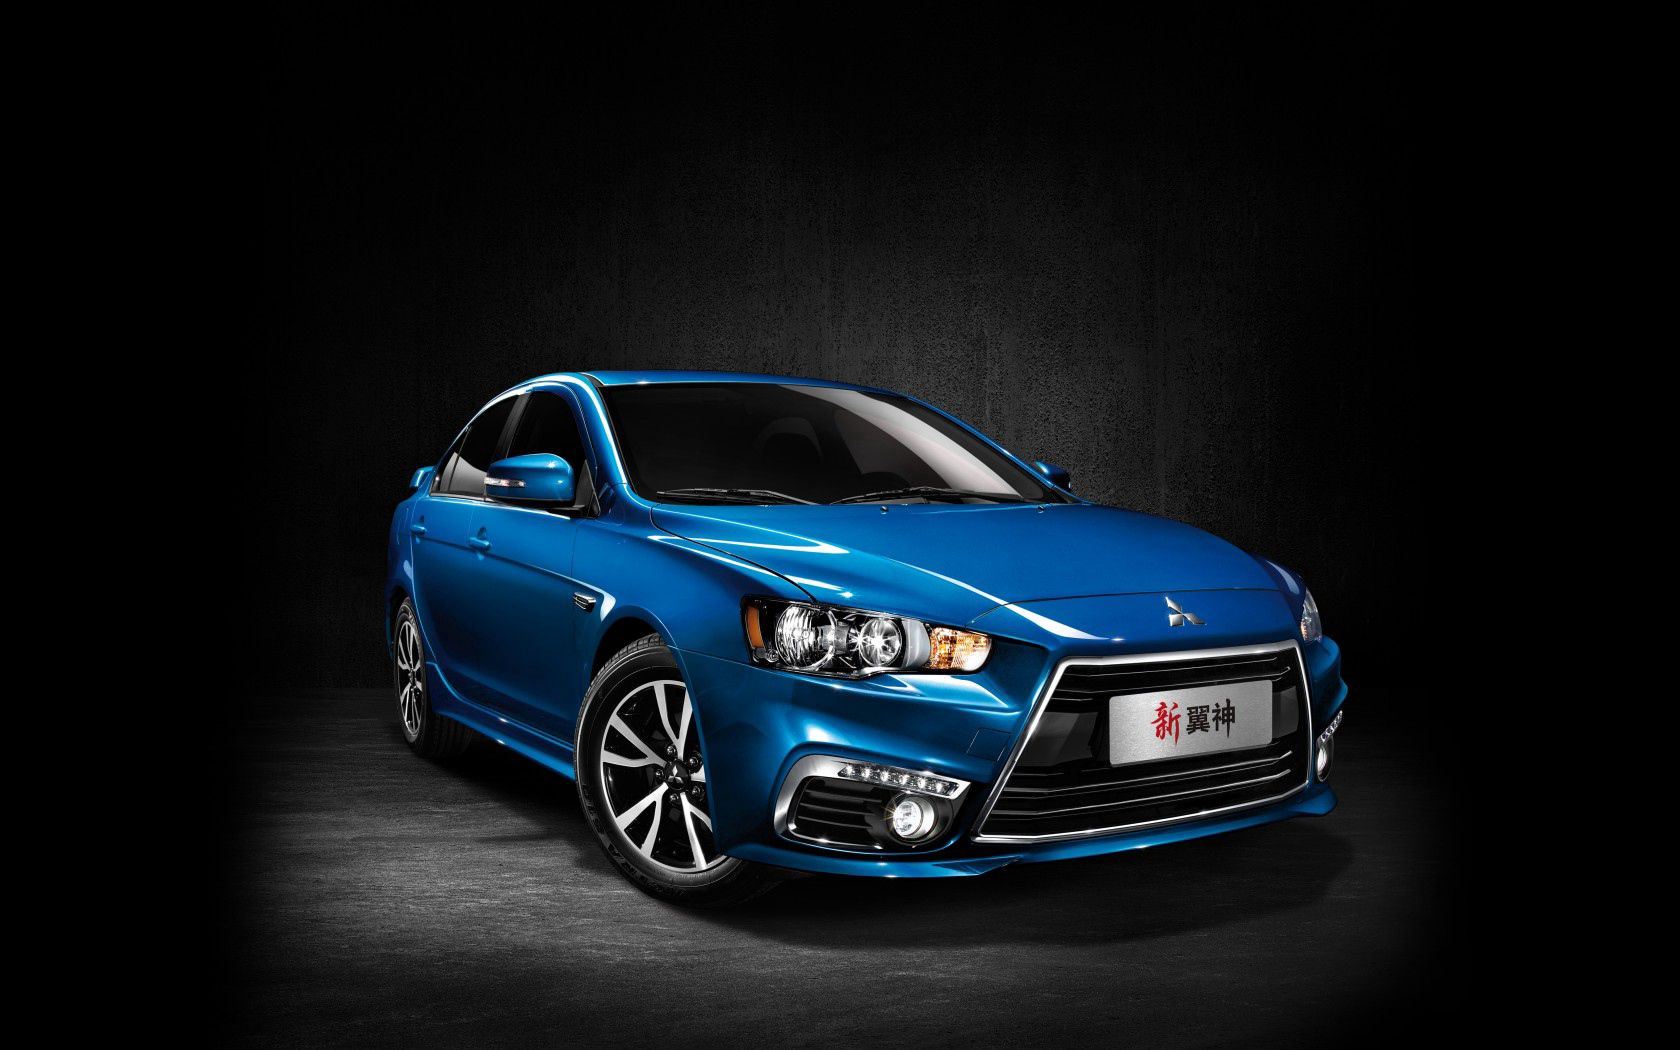 73580 download wallpaper Cars, Mitsubishi, Lancer, Side View screensavers and pictures for free